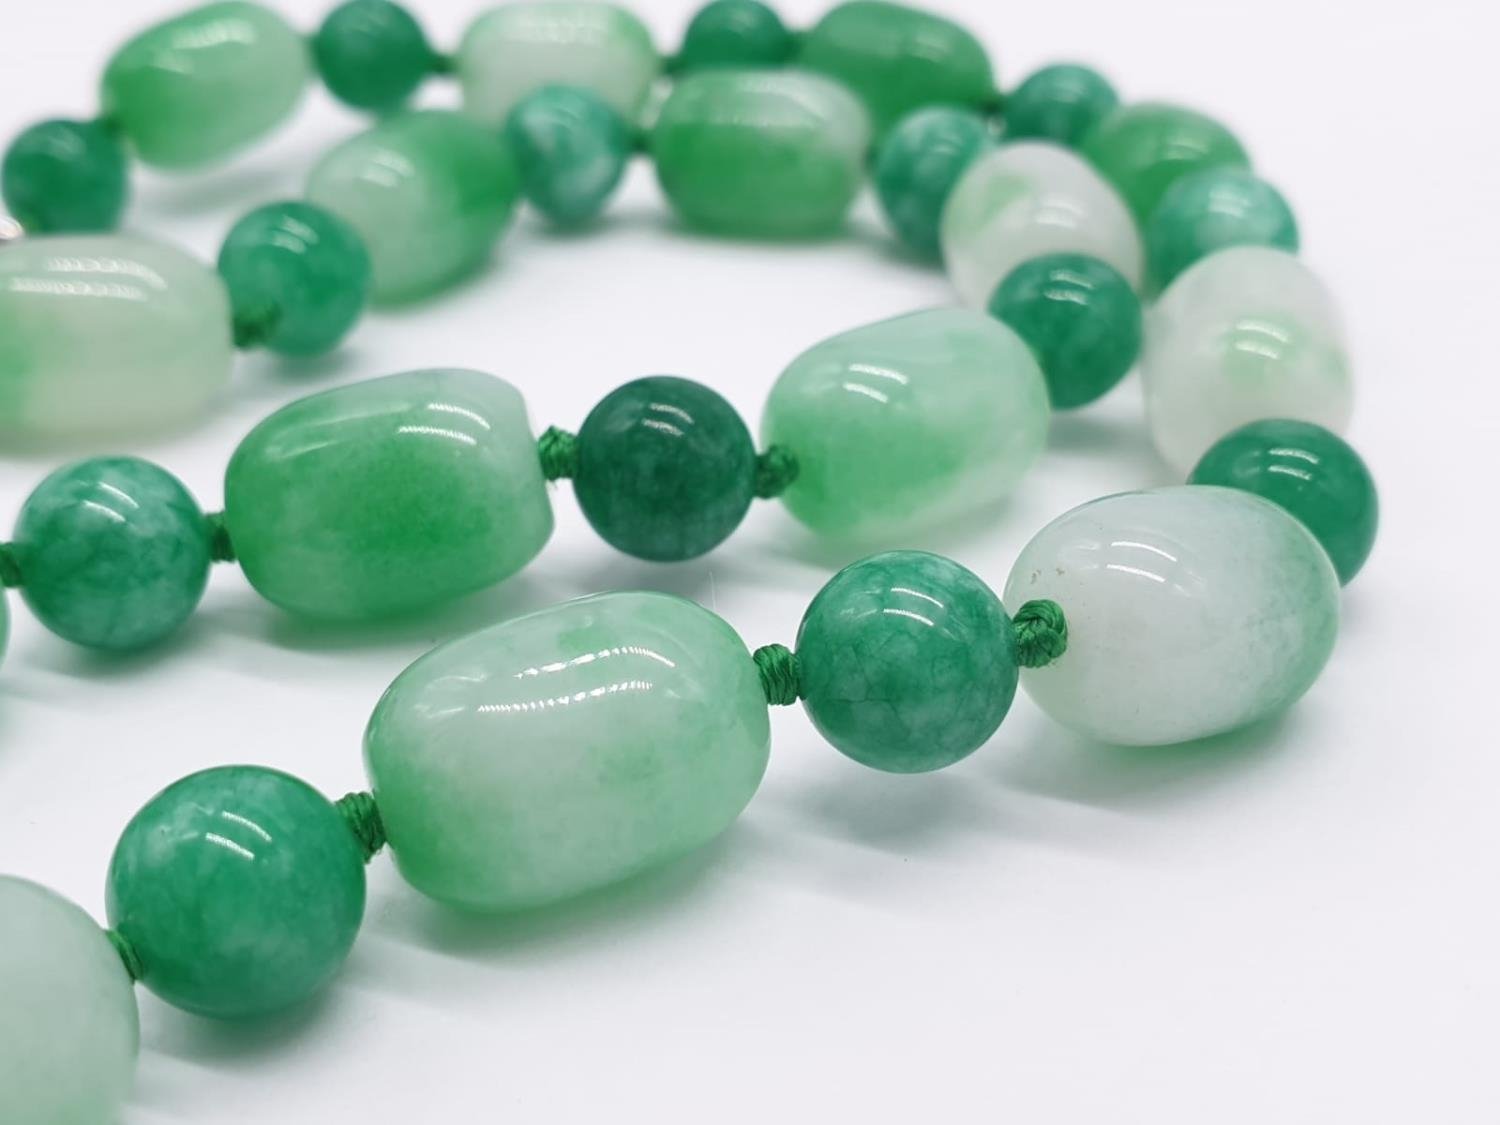 Jade necklace, weight 54g and 42cm long approx - Image 3 of 4